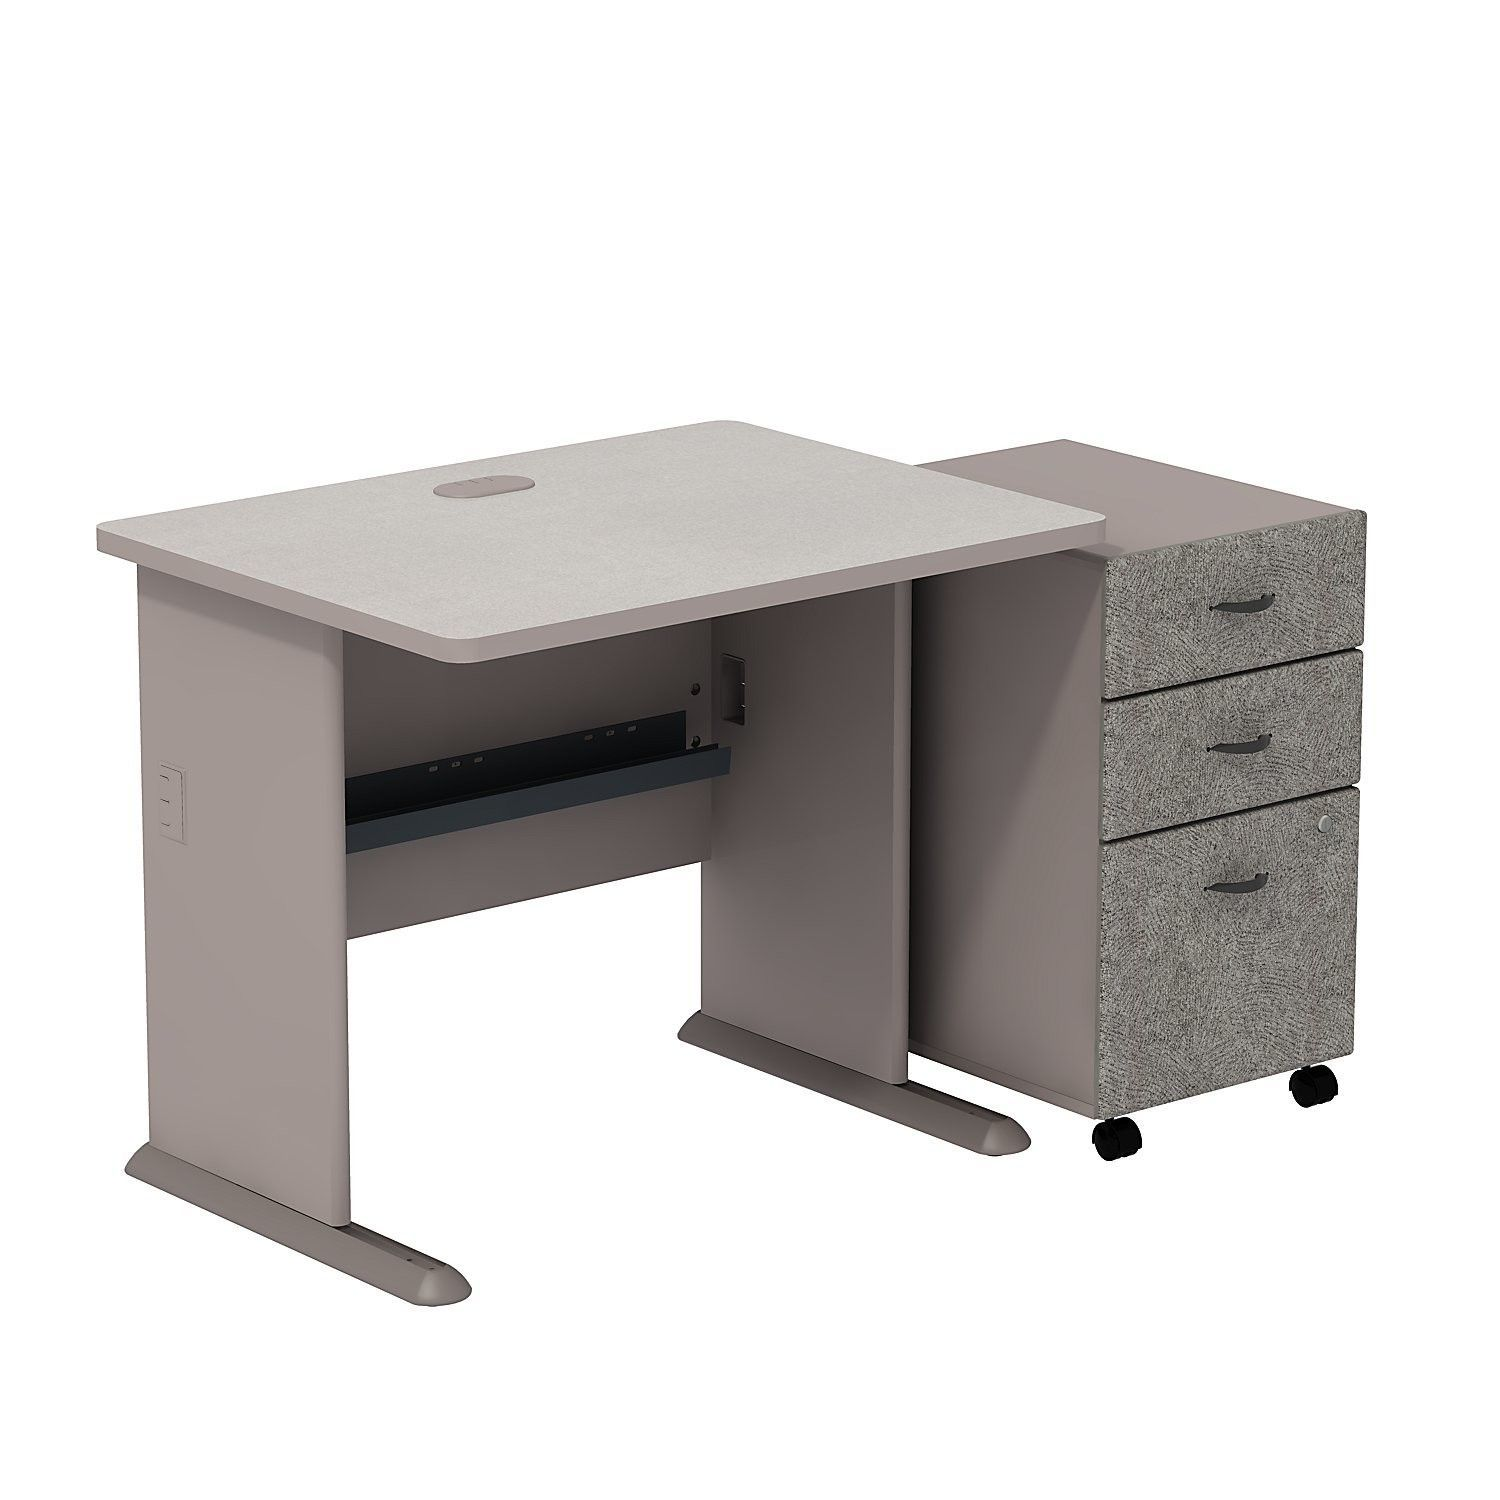 Series A Office Desk with 3-Drawer Mobile Pedestal